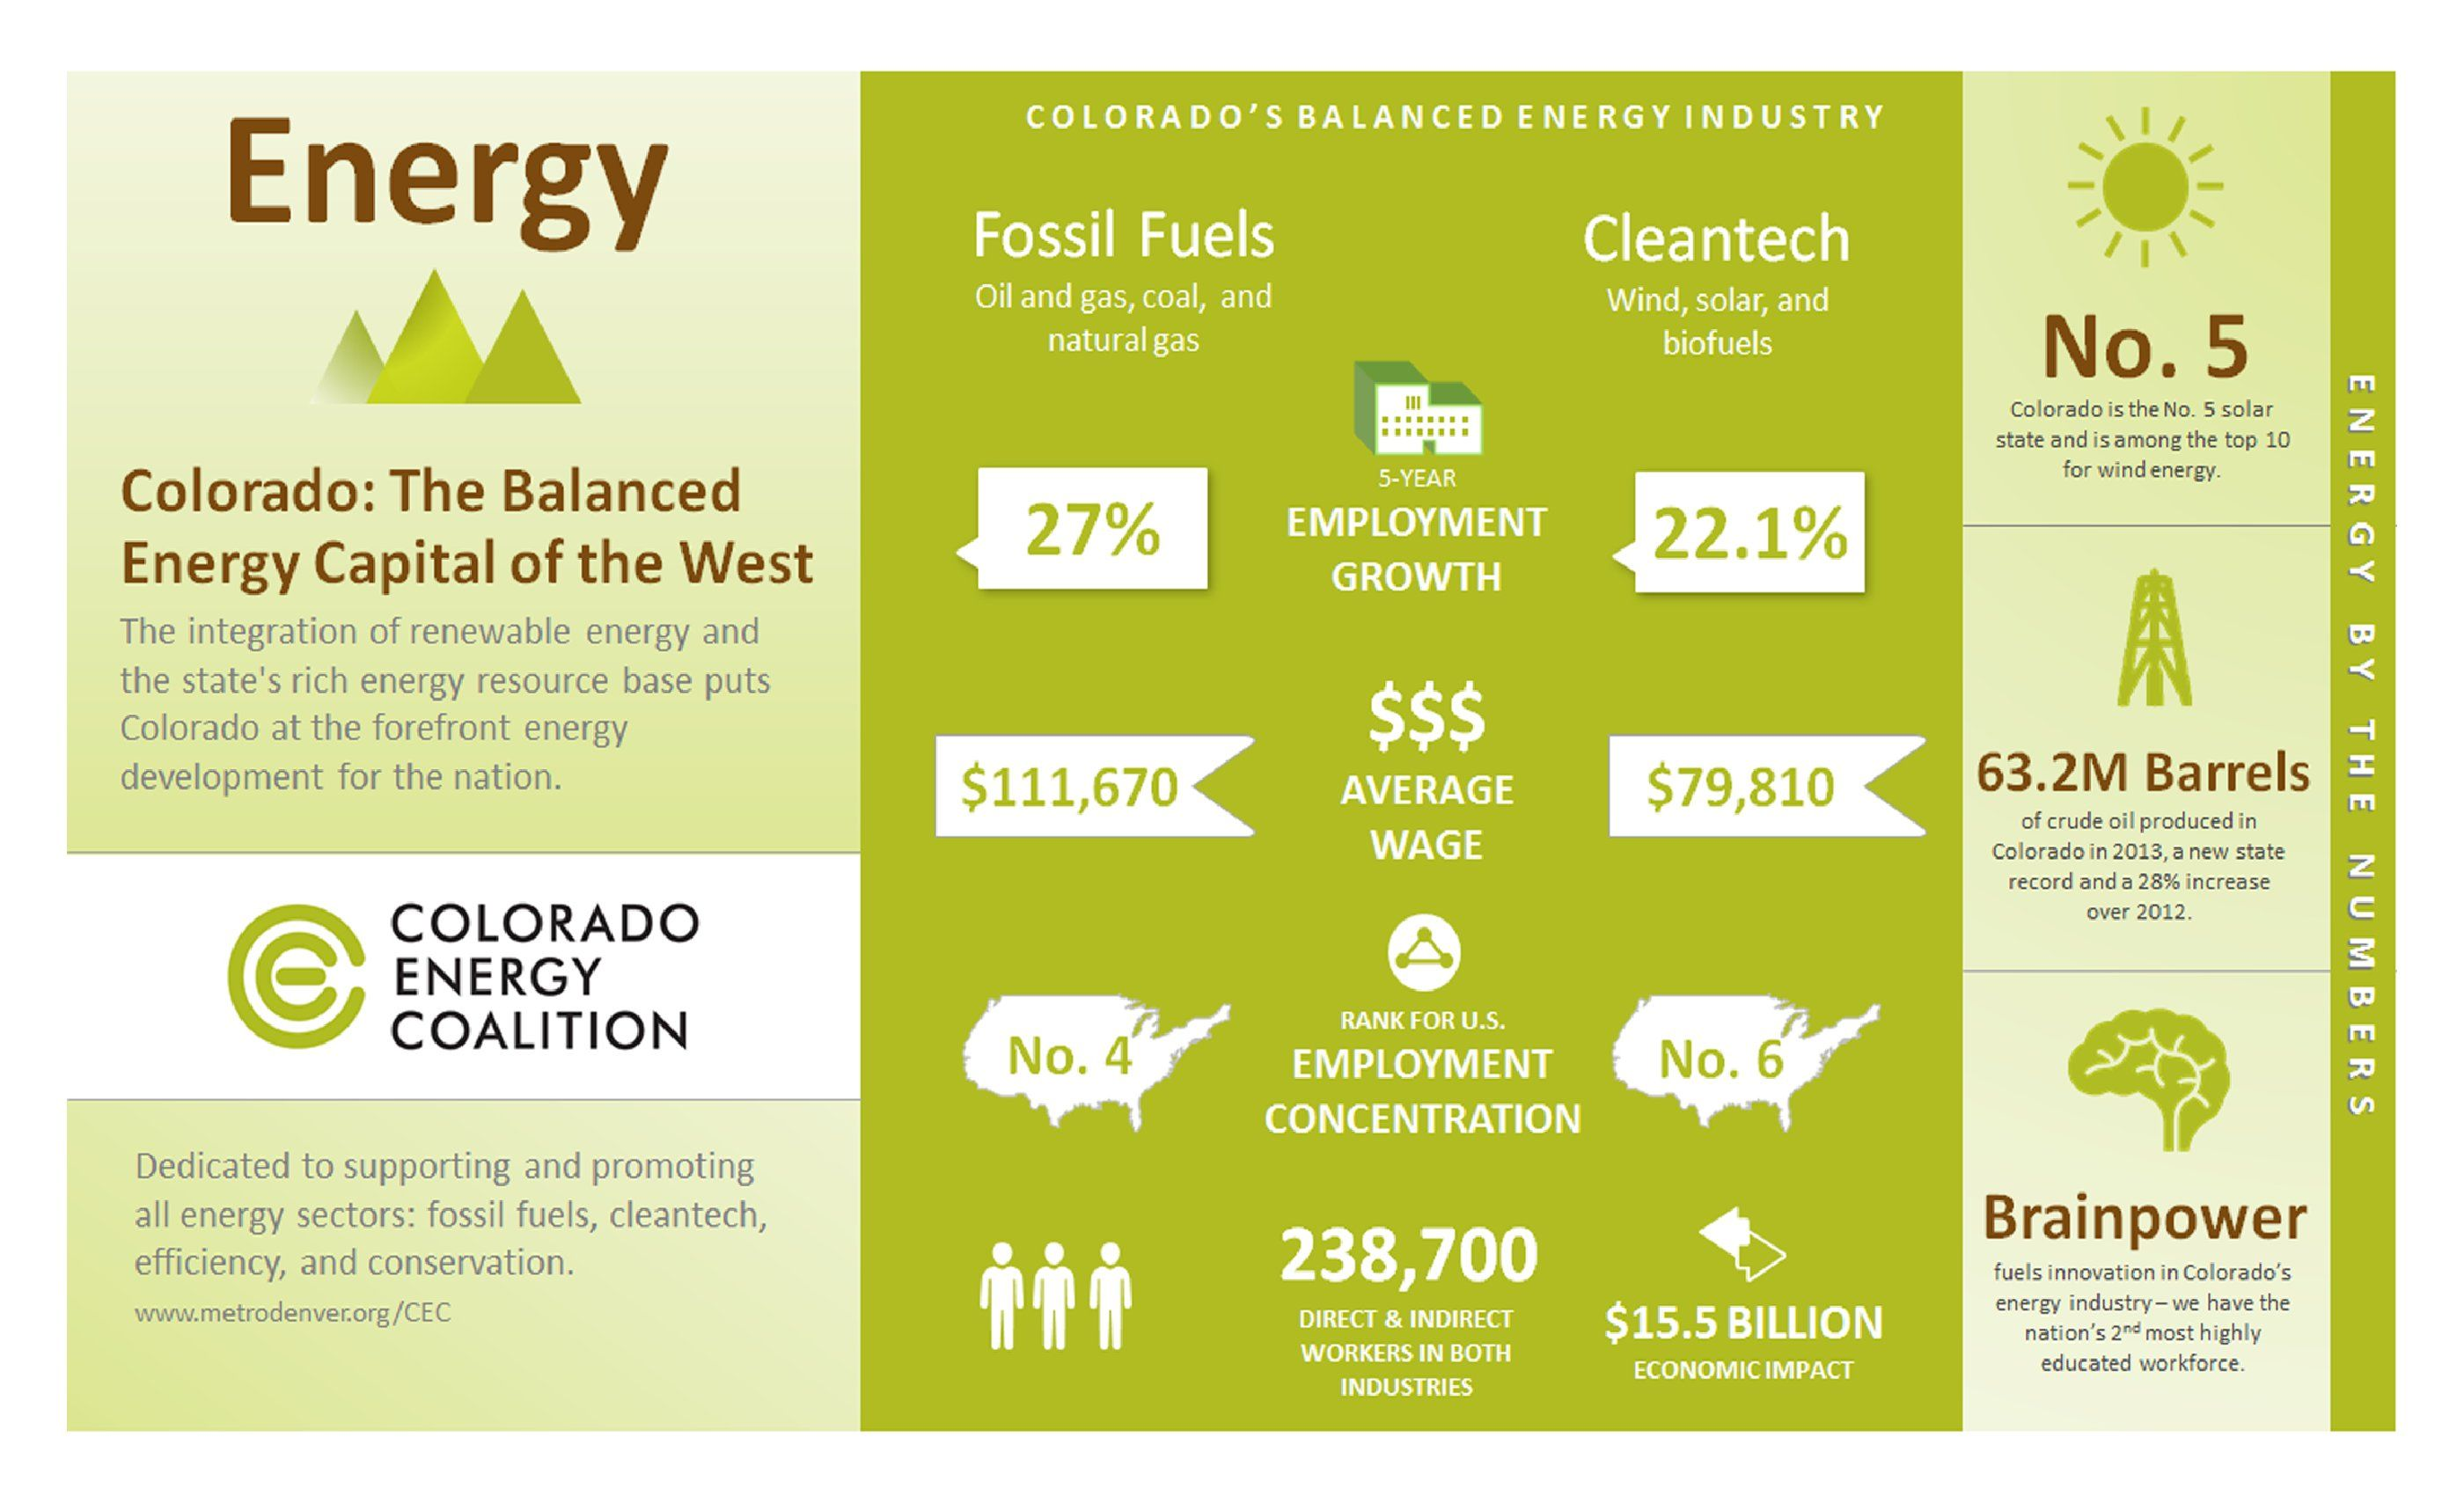 The Colorado Energy Coalition Is Dedicated To Supporting